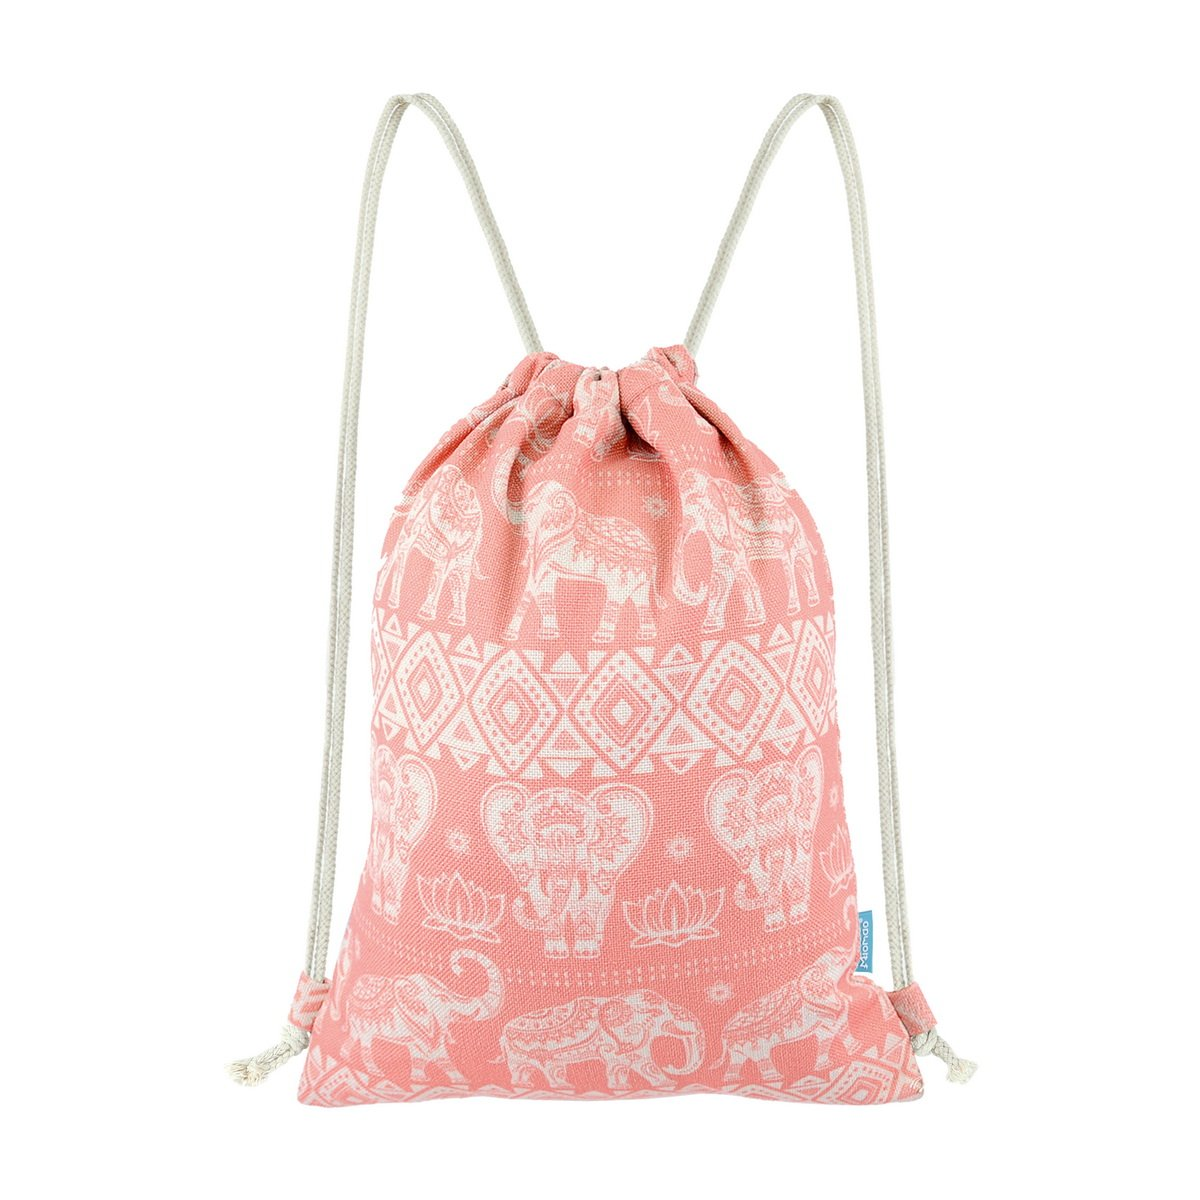 Miomao Gym Sackpack Drawstring Backpack Elephant Cinch Pack Geometric Sinch Sack With Pockets Sport String Bag Yoga Daypack Beach Gift Bag For Men & Women 13 X 18 Inches Coral Pink